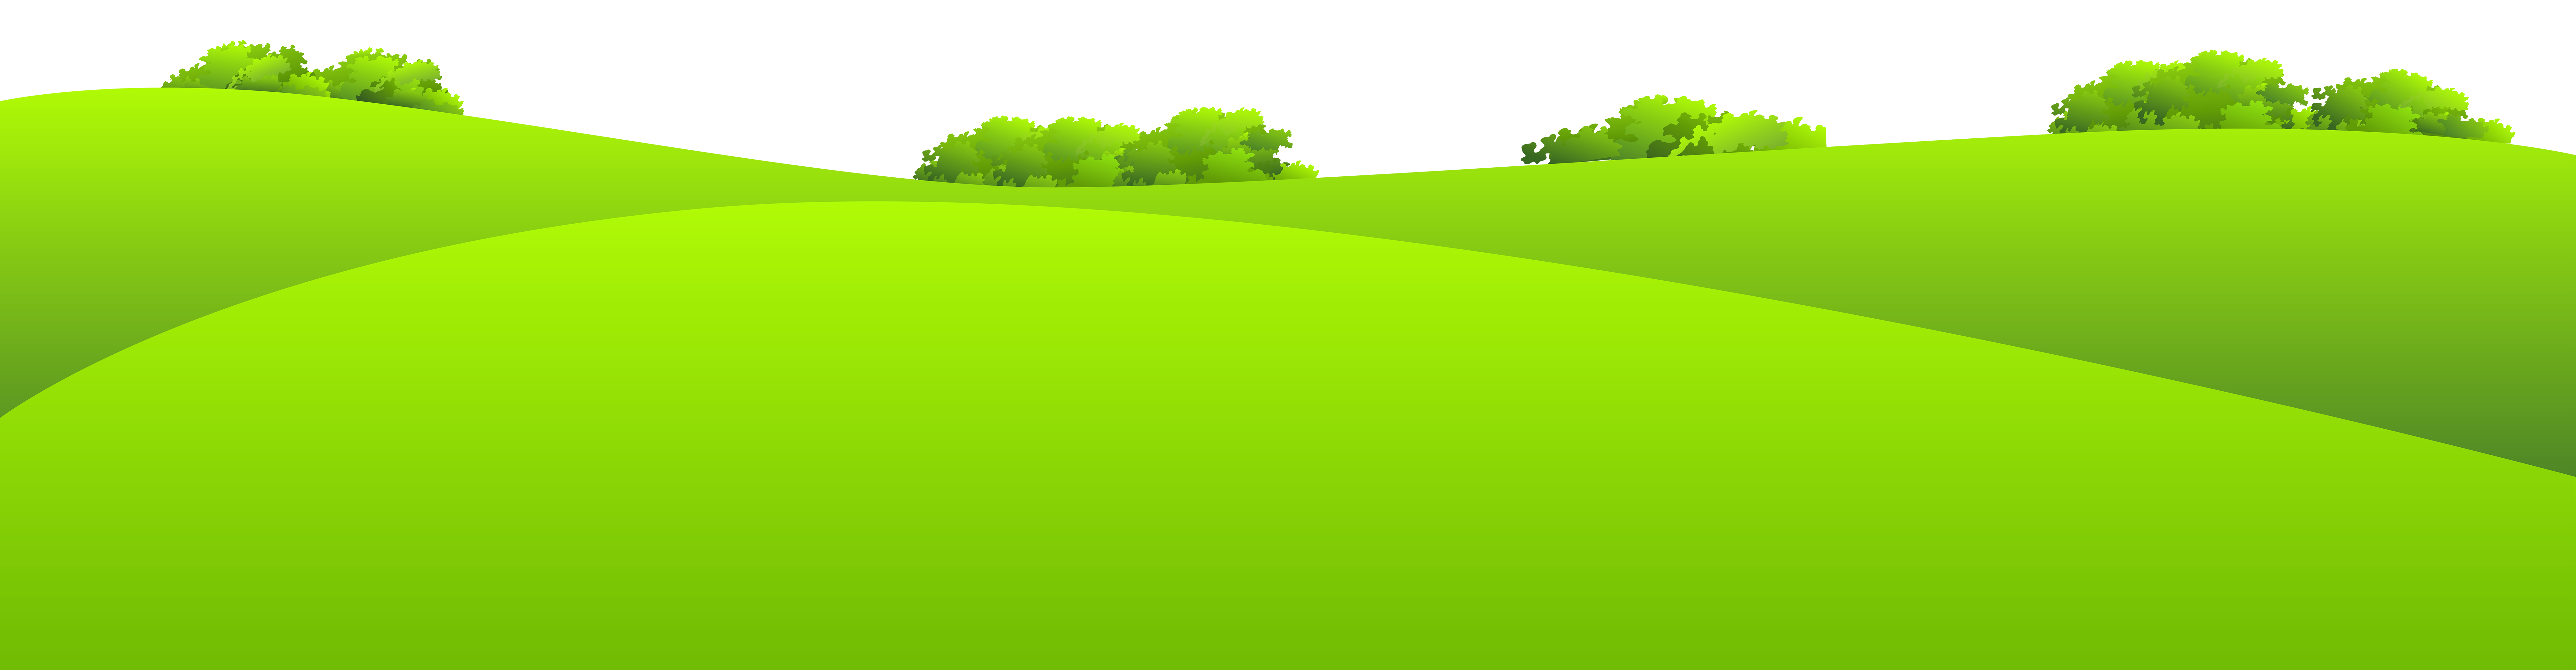 Field clipart green field, Field green field Transparent FREE for ... picture